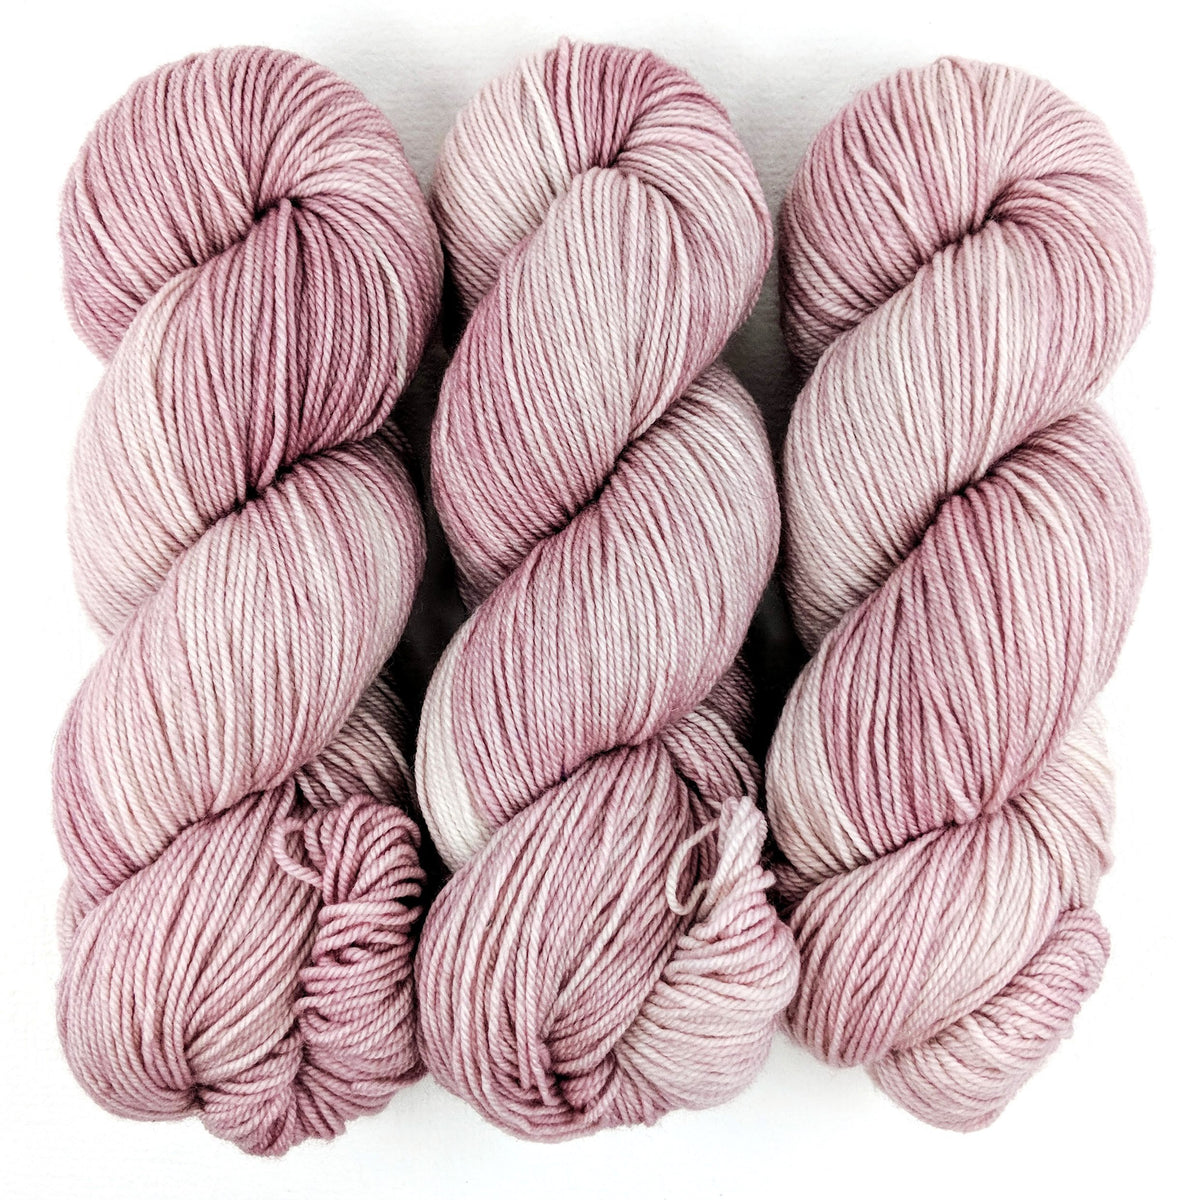 Apple Blossom - Socknado Fingering - Dyed Stock